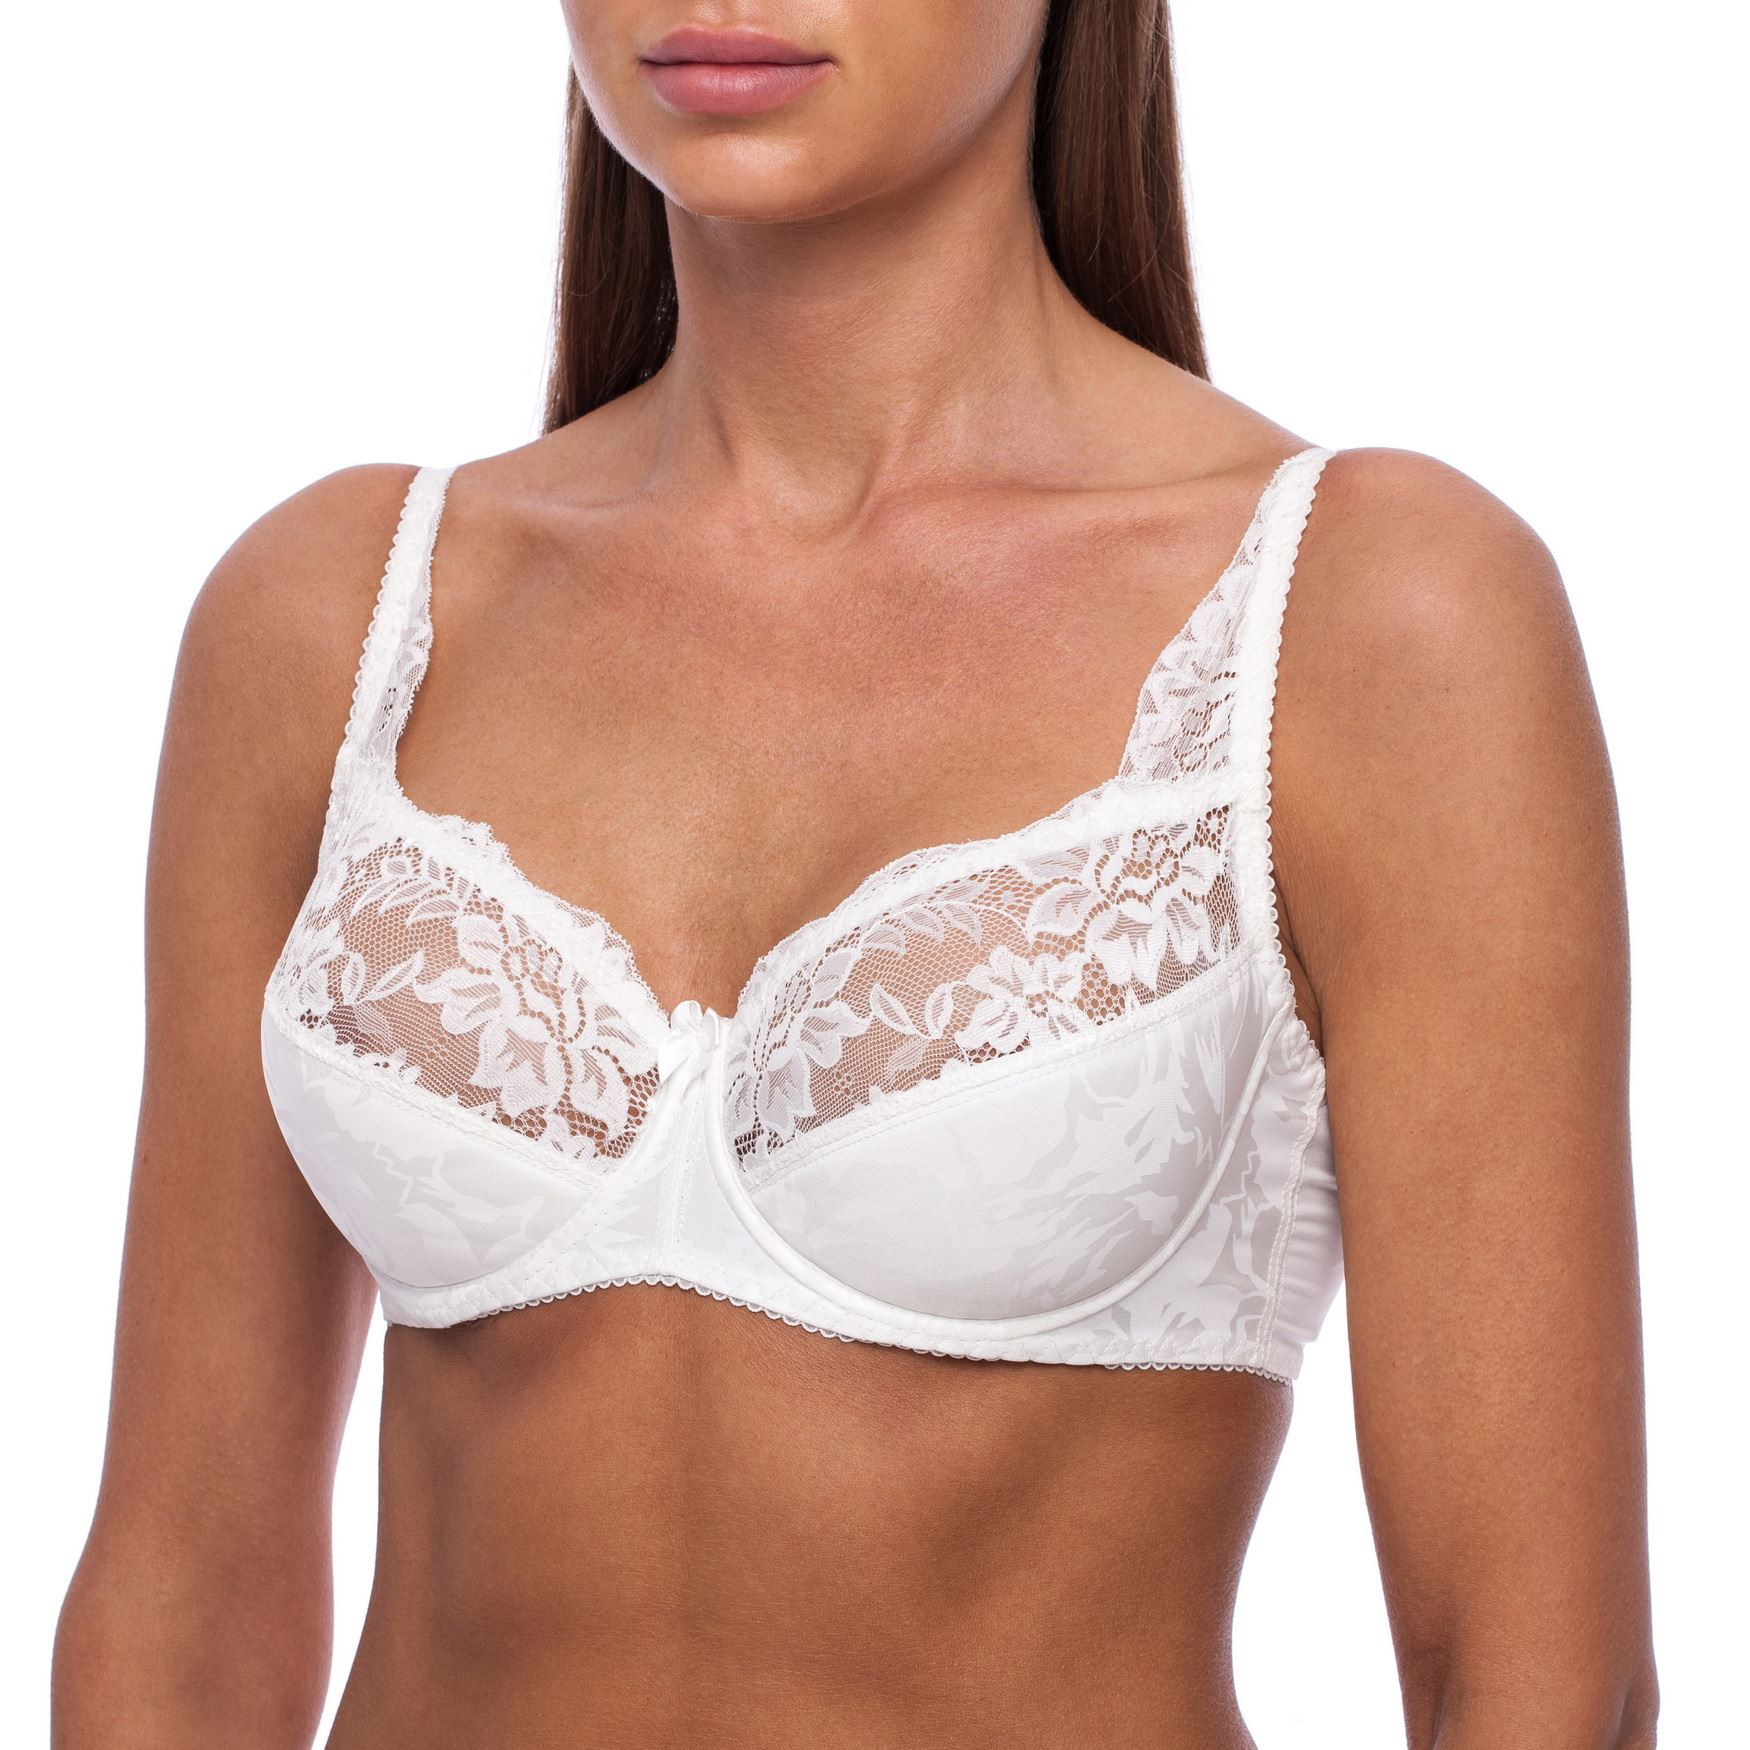 Full-Coverage-Plus-Size-Underwire-Minimizer-Padded-Comfortable-Lace-Figure-Bra thumbnail 12